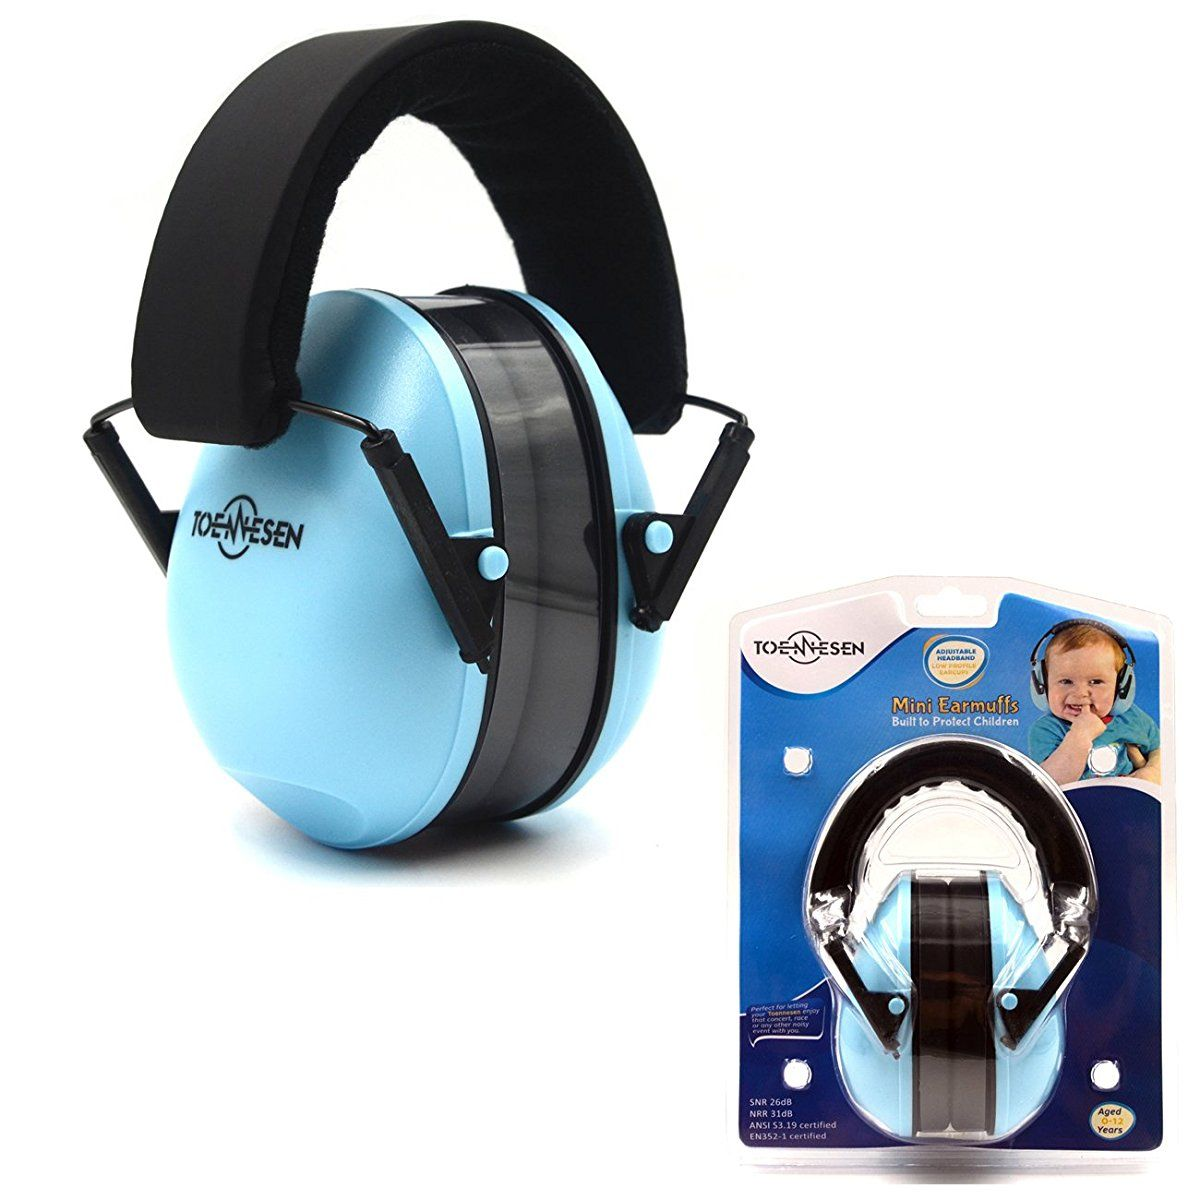 Noise Canceling for Children /& Infants Low Profile Cups Fully Adjustable for 0-12 Yrs Hearing Protection Headphones Padded Snug Fit Professional Earmuffs for Kids by My Happy Tot